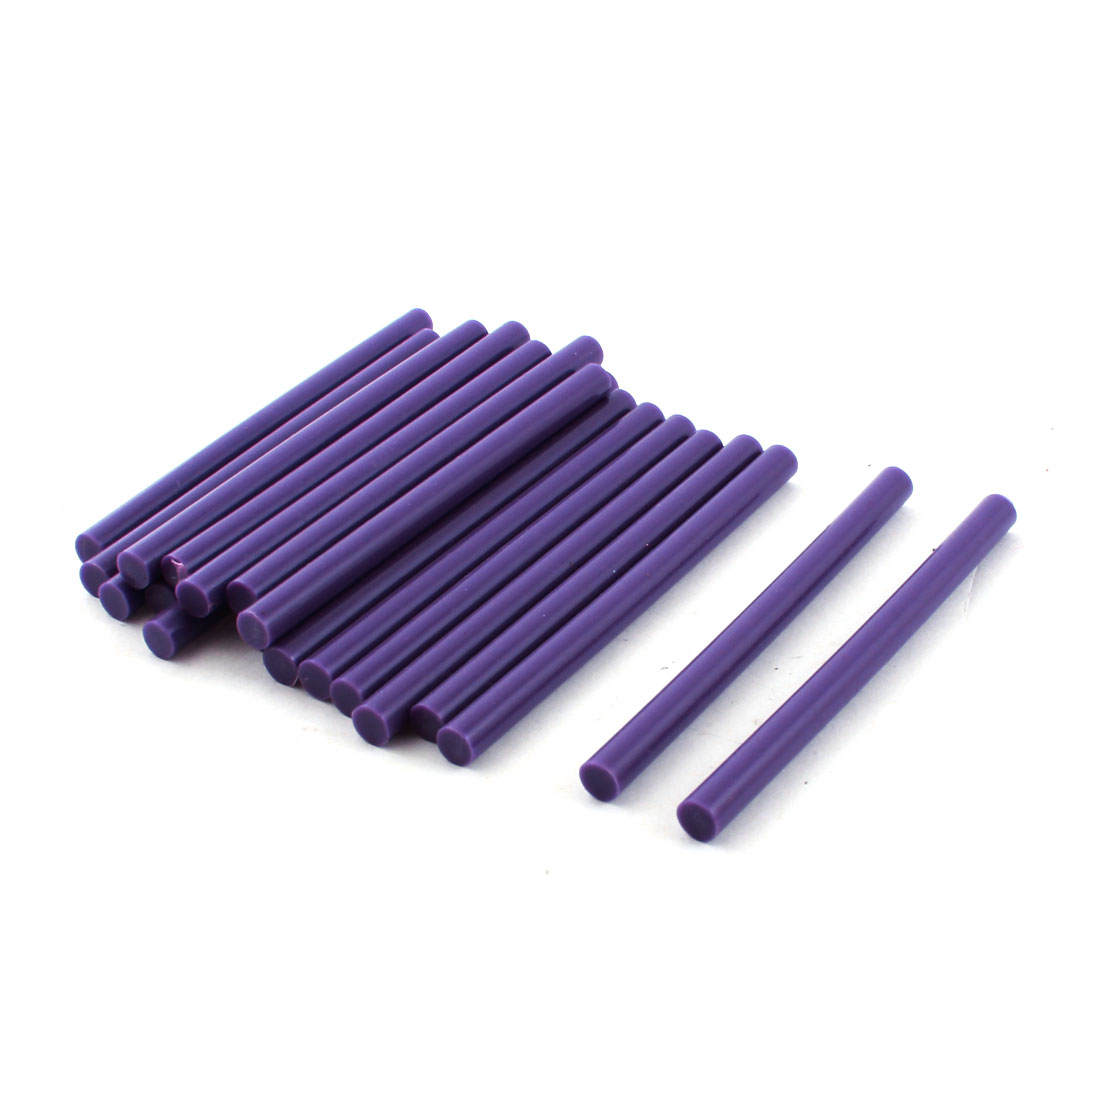 20 Pcs Purple Hot Melt Glue Gun Adhesive Sticks 7mm x 100mm for Crafting Models